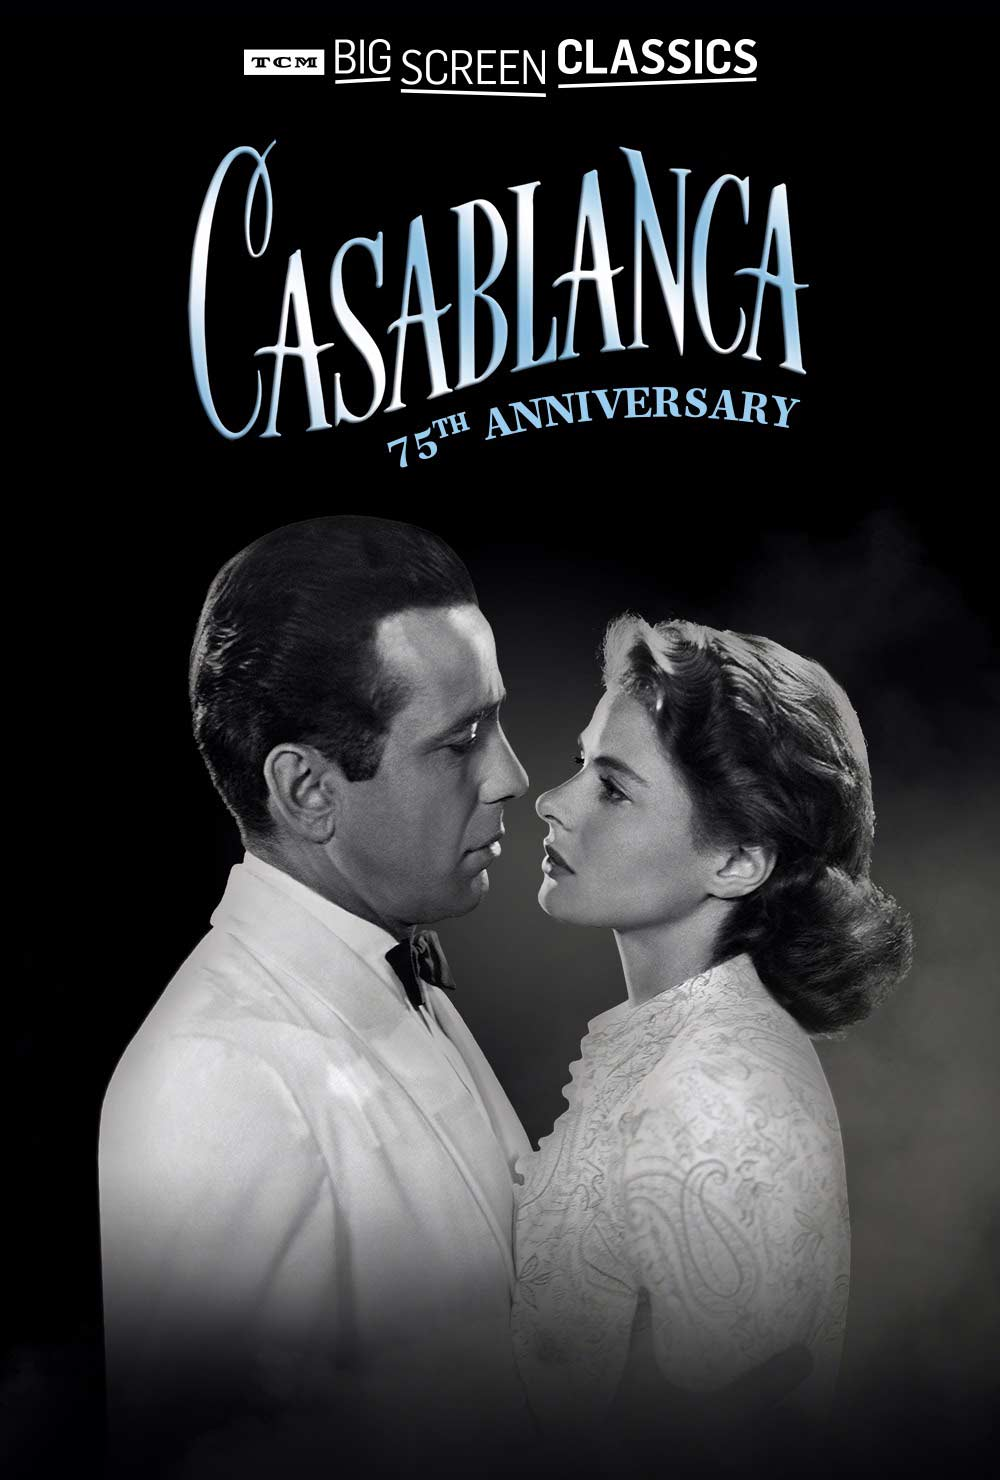 """Bogie and Bergman in """"Casablanca"""" - This classic film pits Humphrey Bogart and Ingrid Bergman against the evils of World War II. And in the end, Bogie shows what it means to transcend one's own heartbreak, to make a sacrifice for the greater good. These two lead characters breakup for basically the best reason ever. They are badasses.Why is this a good """"breakup"""" classic movie? Because the story shows that sometimes breakups need to happen and that its ok not to end up together."""